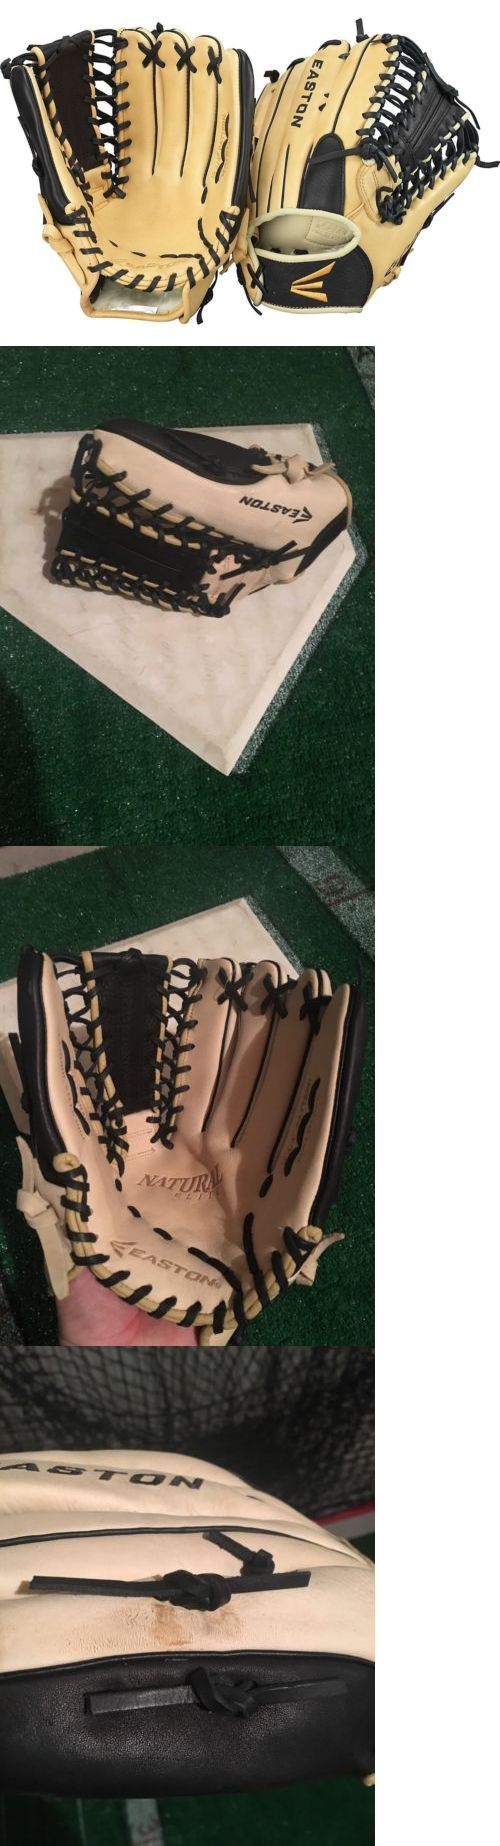 Gloves and Mitts 16030: Easton Natural Elite 12.75 Trapeze Baseball Softball Outfield Glove Nwt -> BUY IT NOW ONLY: $59.99 on eBay!